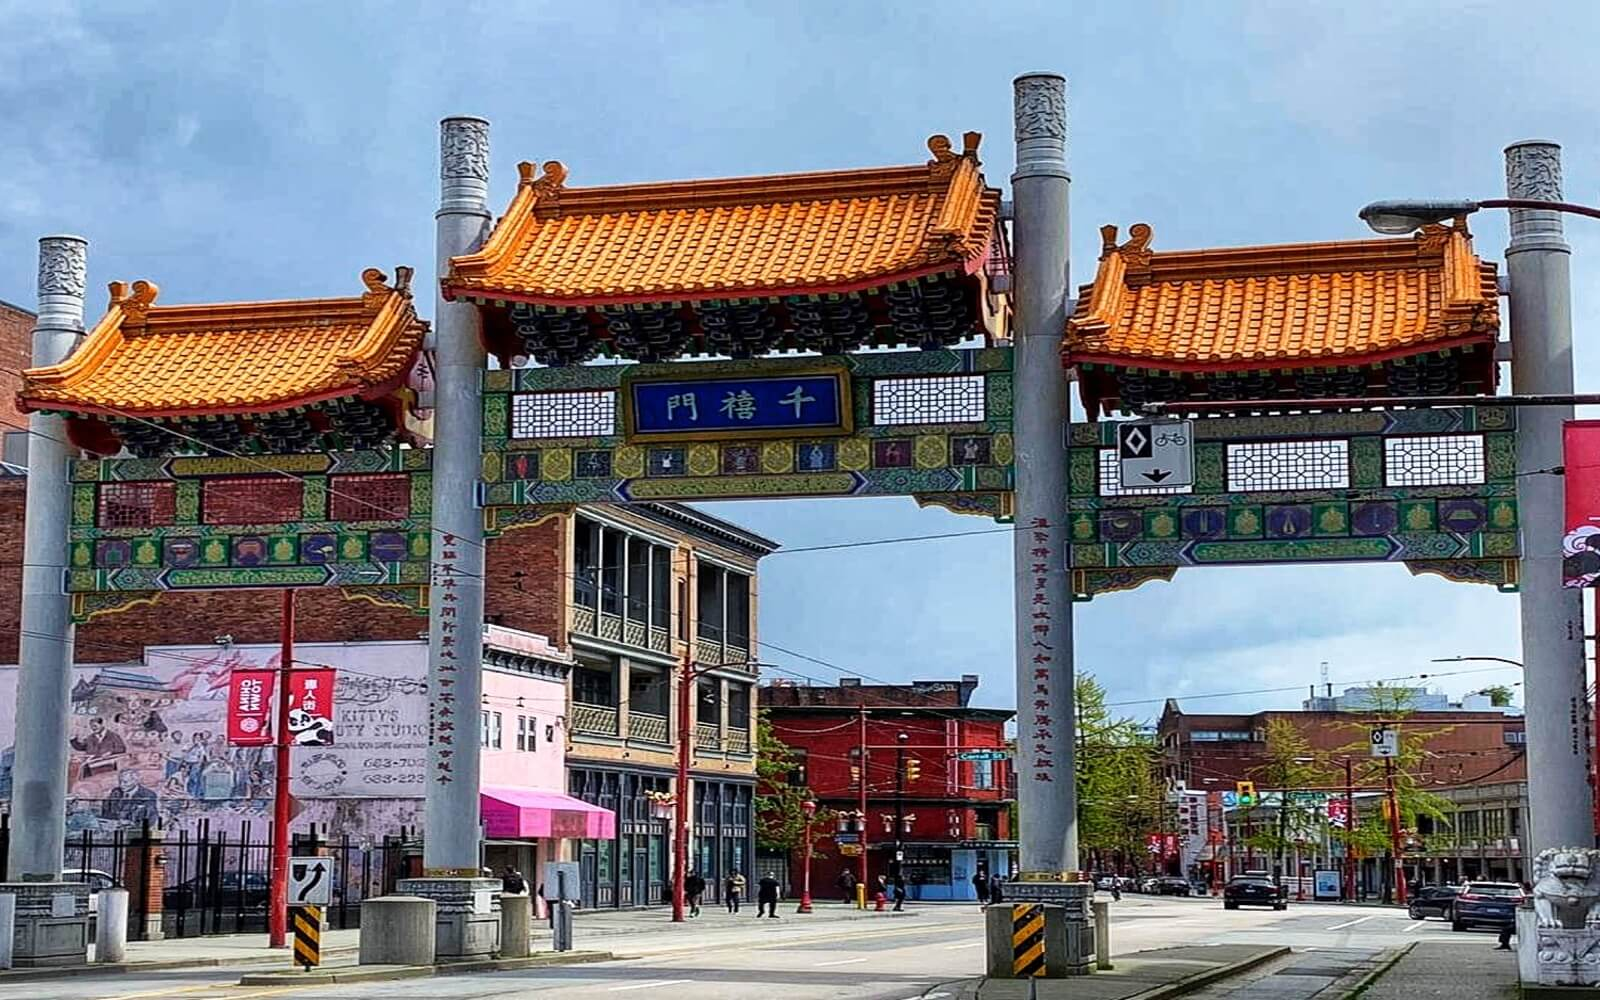 The entrance to Vancouver's Chinatown